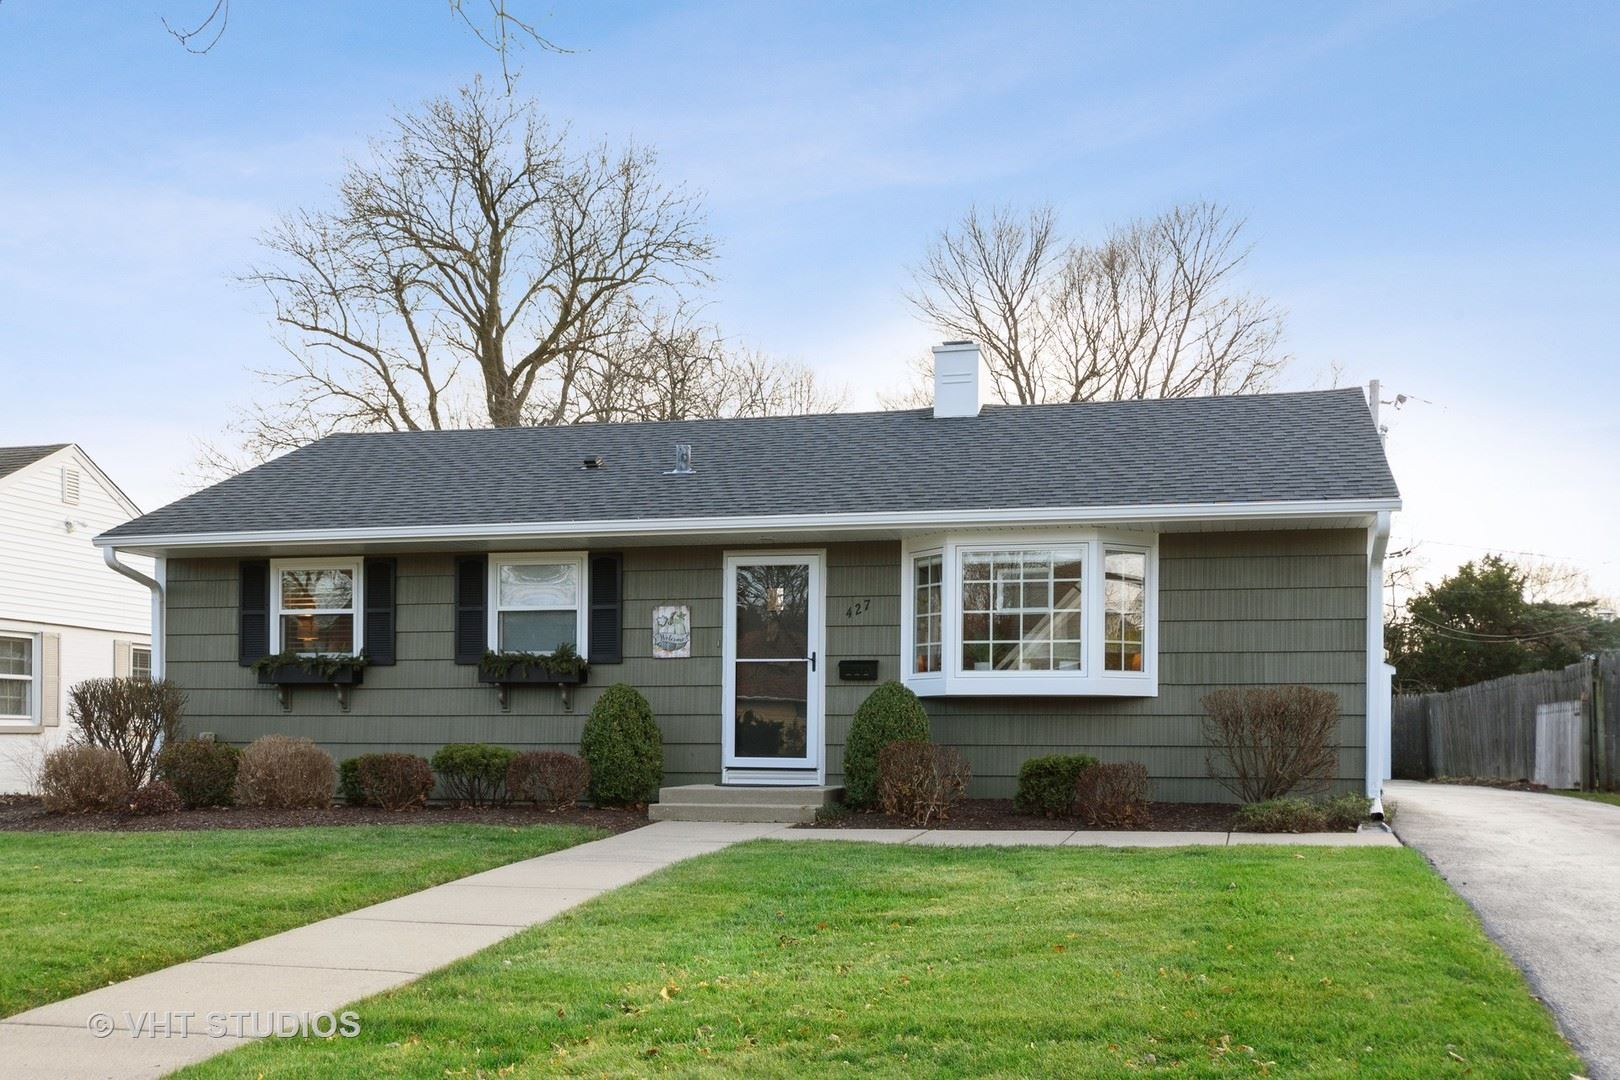 Photo for 427 E Berry Road, Barrington, IL 60010 (MLS # 10940482)